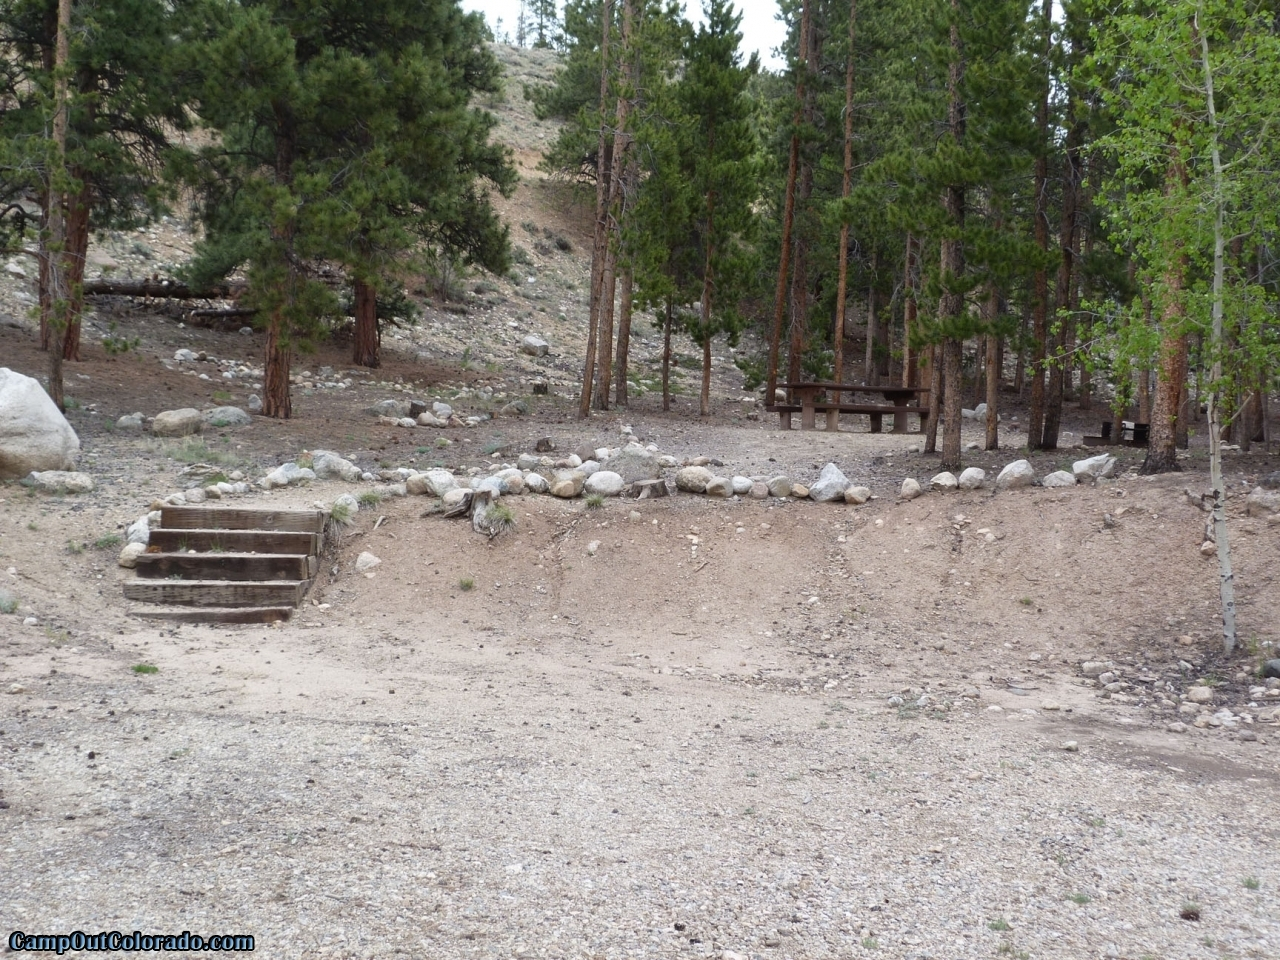 camp-out-colorado-lakeview-campground-rocks